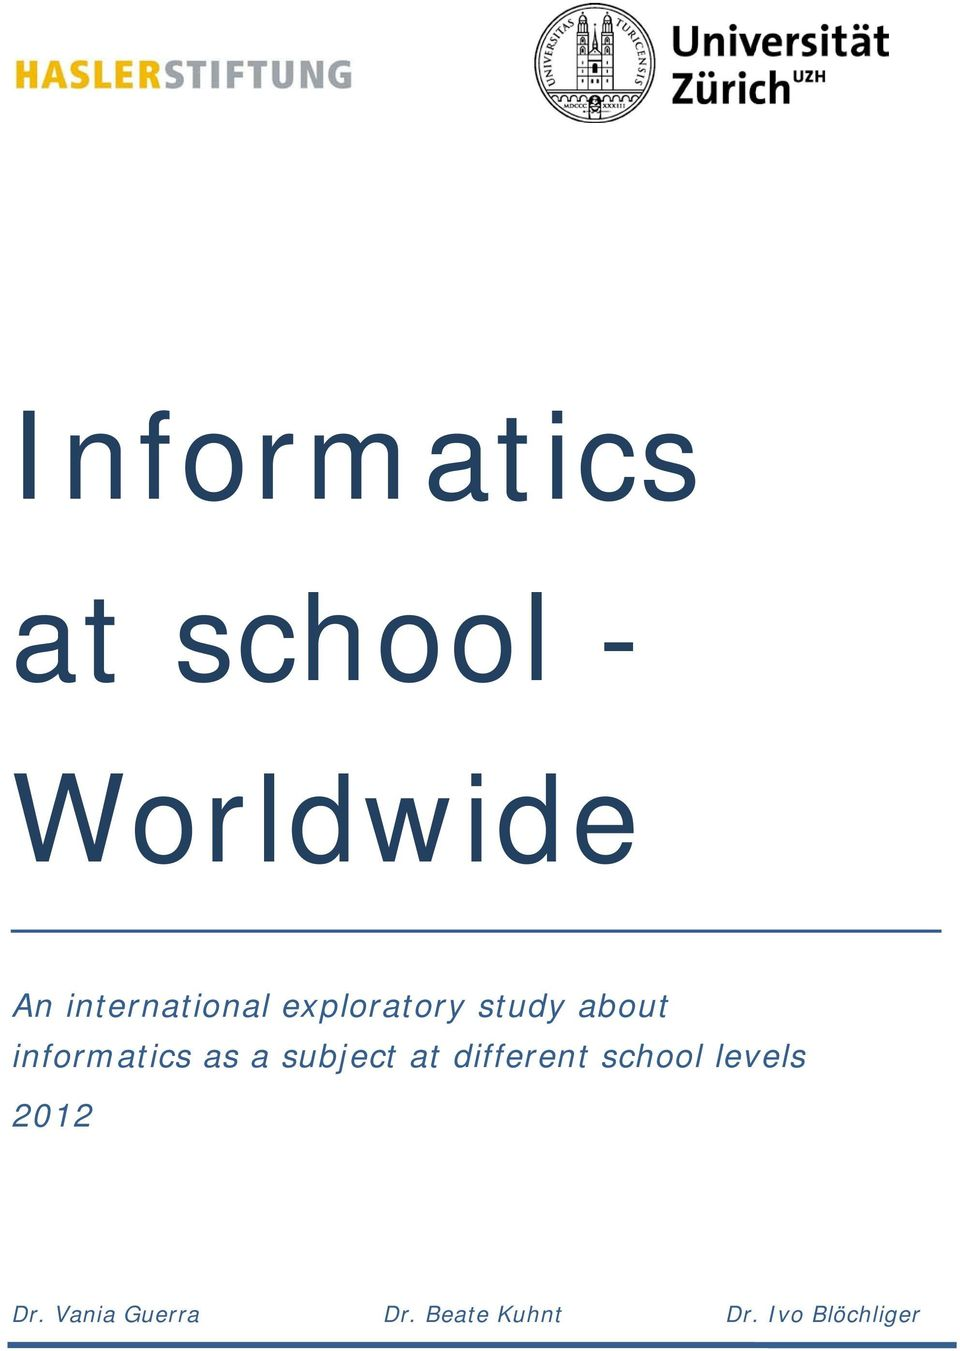 informatics as a subject at different school